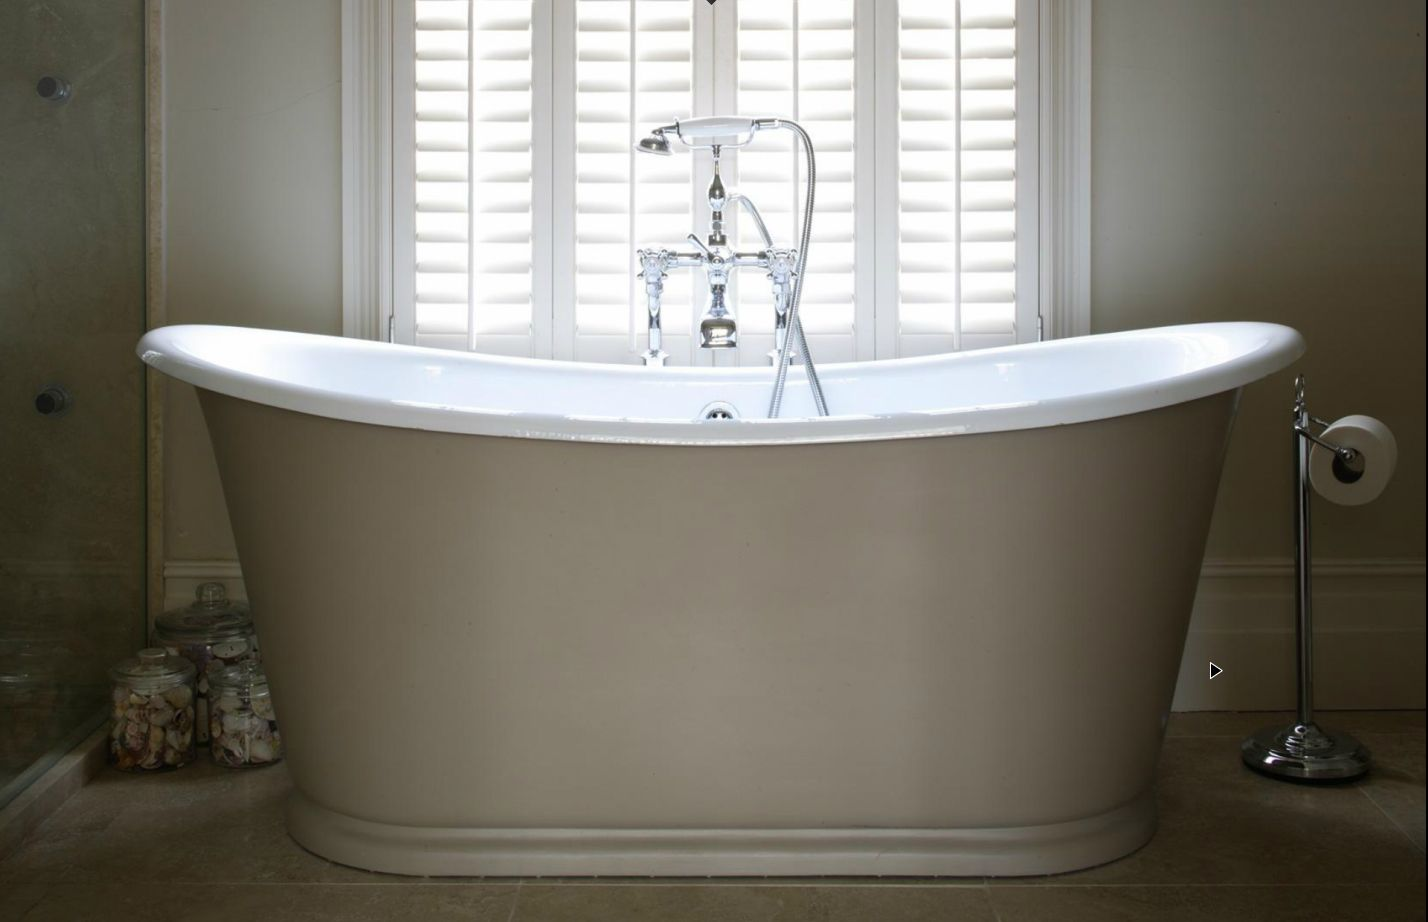 Free standing bath tub indiana ideas pinterest for Free standing bath tub